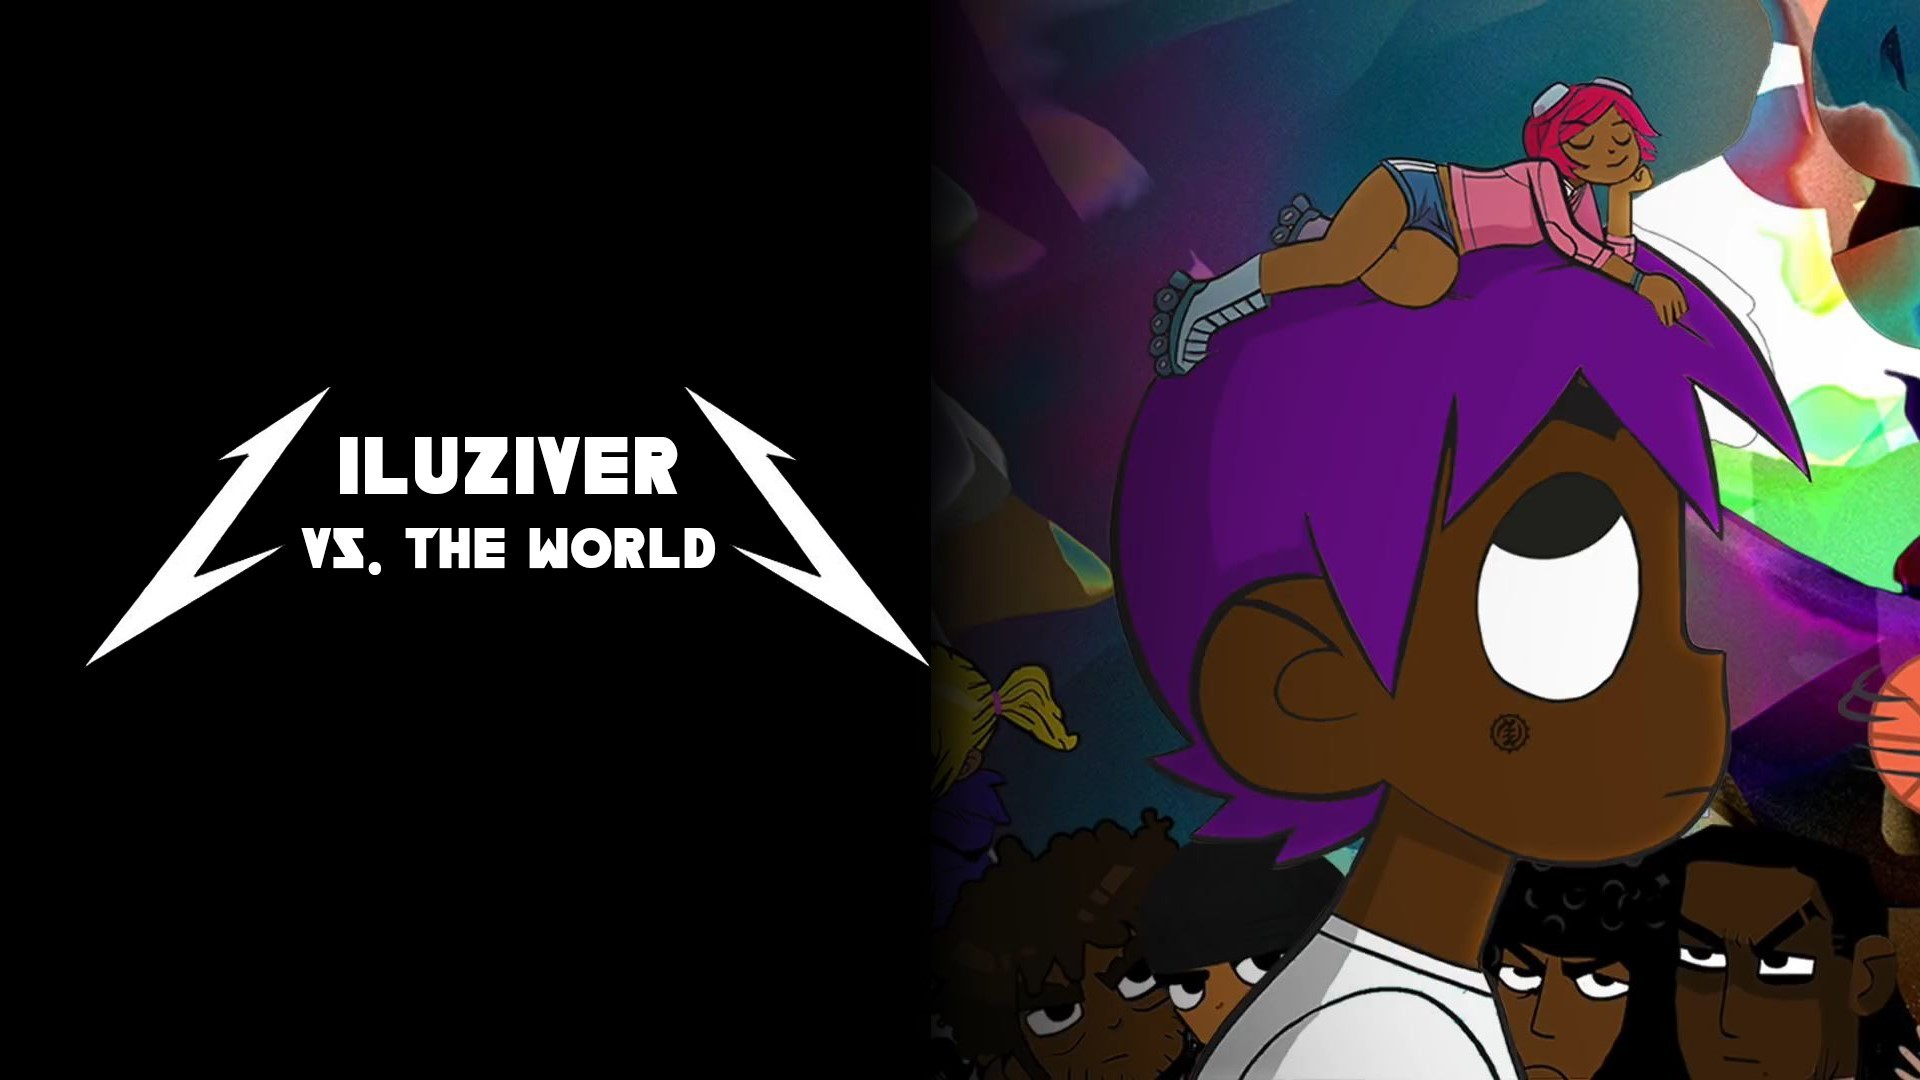 Lil Uzi Vert Vs The World Hd Wallpaper Kolpaper Awesome Free Hd Wallpapers The world 2!!!hi, my name is fweejee and if you are new. lil uzi vert vs the world hd wallpaper